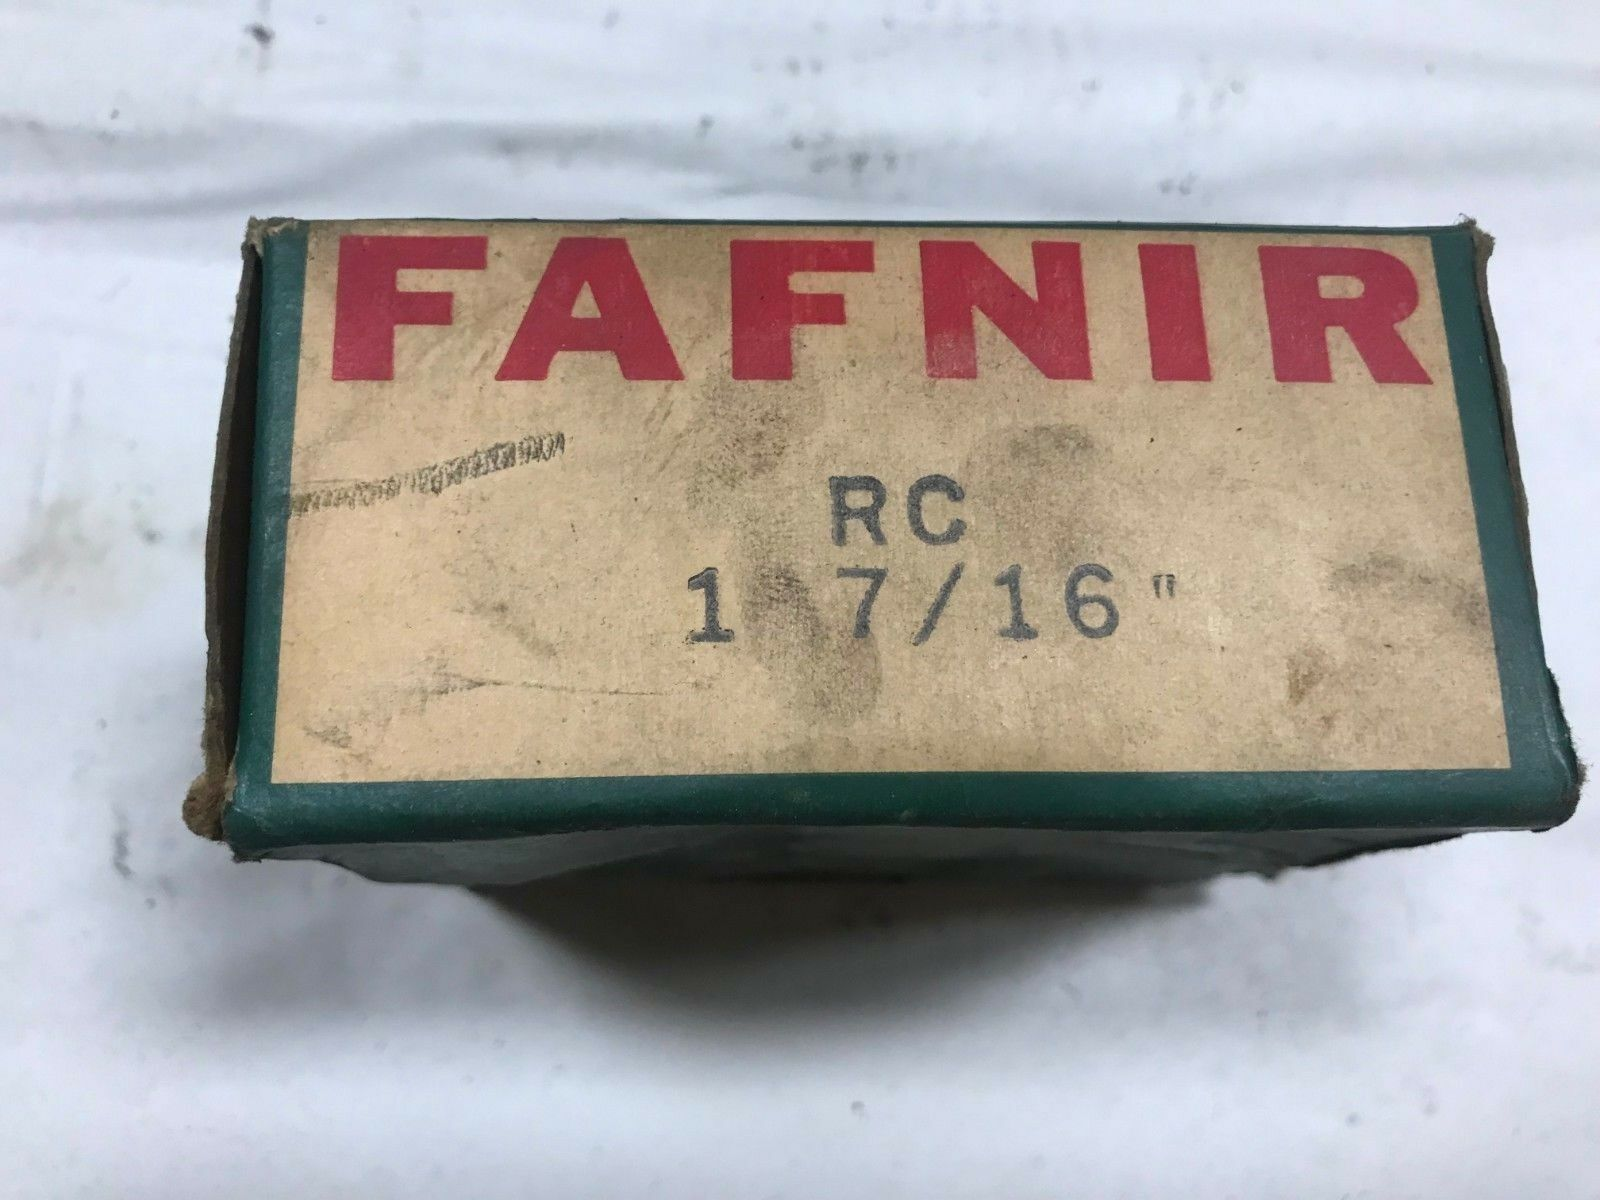 FAFNIR RC 1-7 16- 1-7 16  BALL BEARING CARTRIDGE UNIT